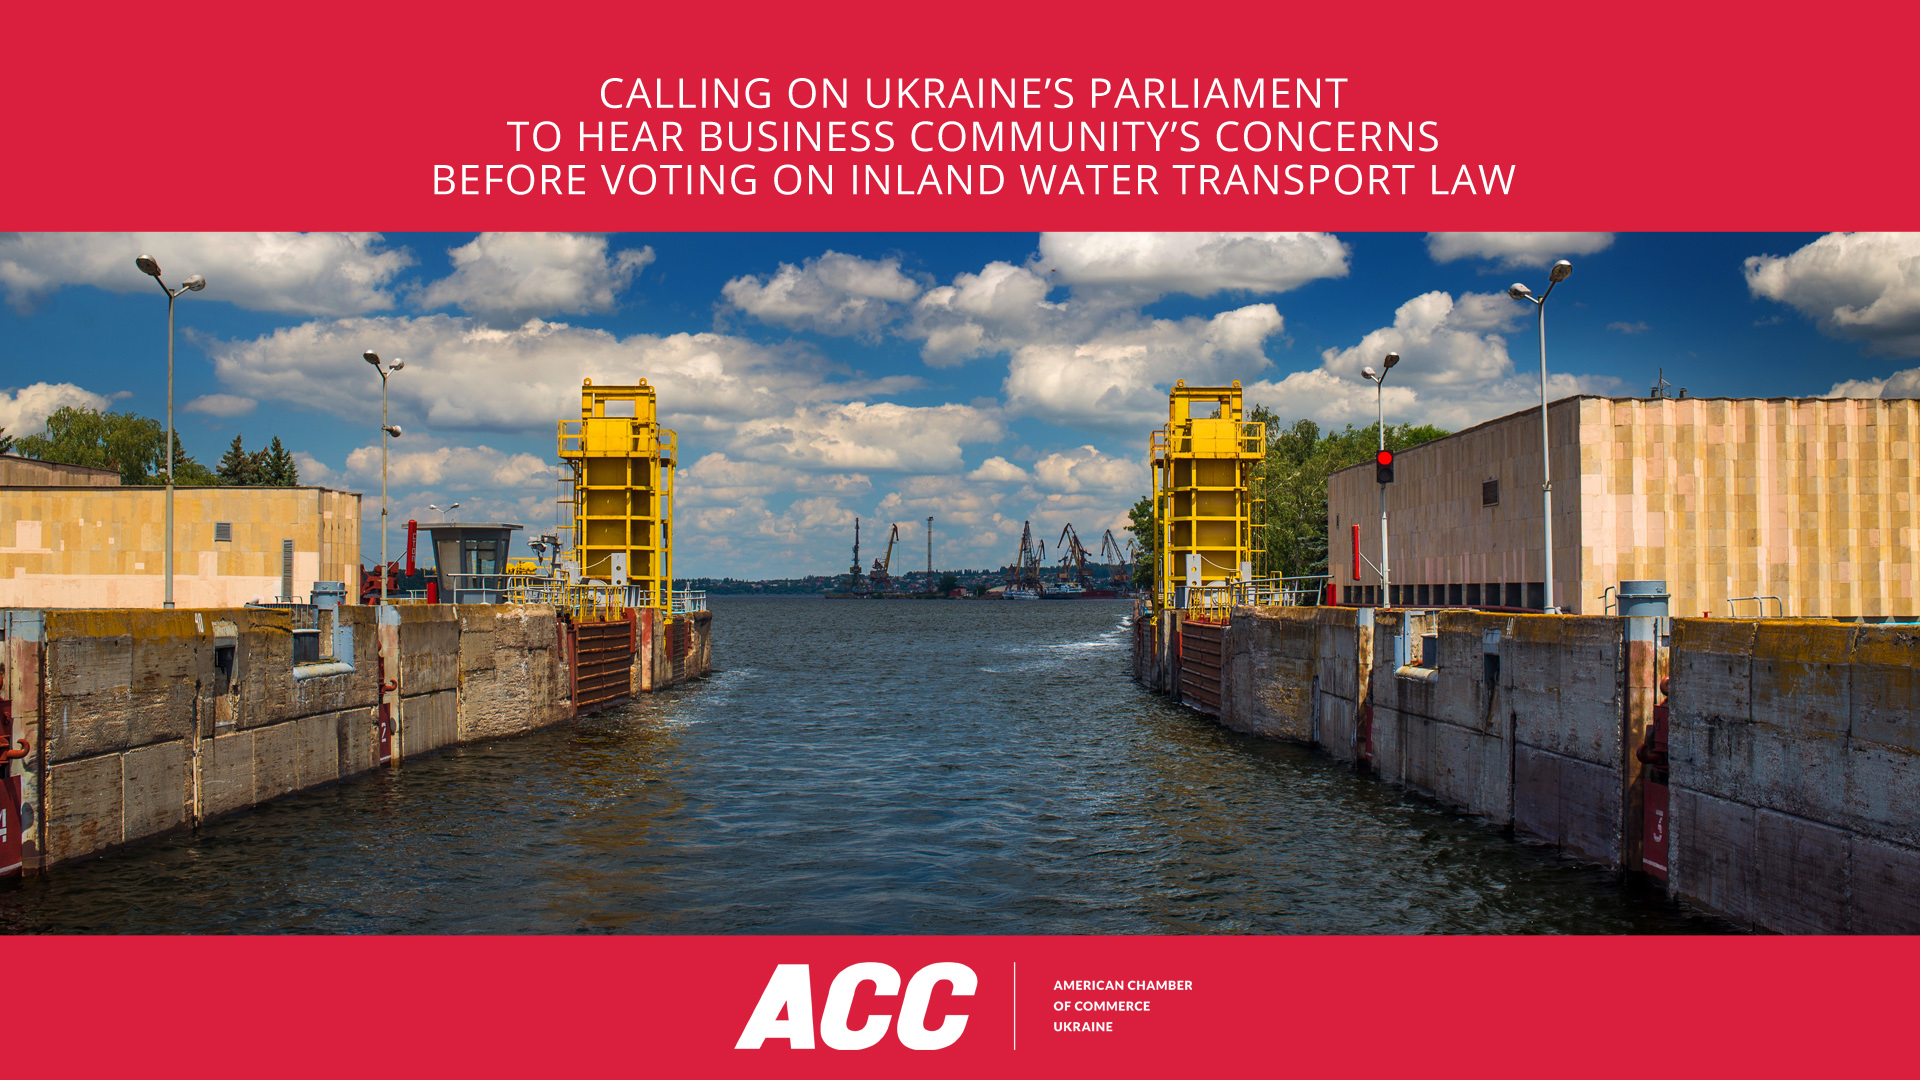 The American Chamber of Commerce Calls on Ukraine's Parliament to Hear Business Community's Concerns Before Voting on Inland Water Transport Law